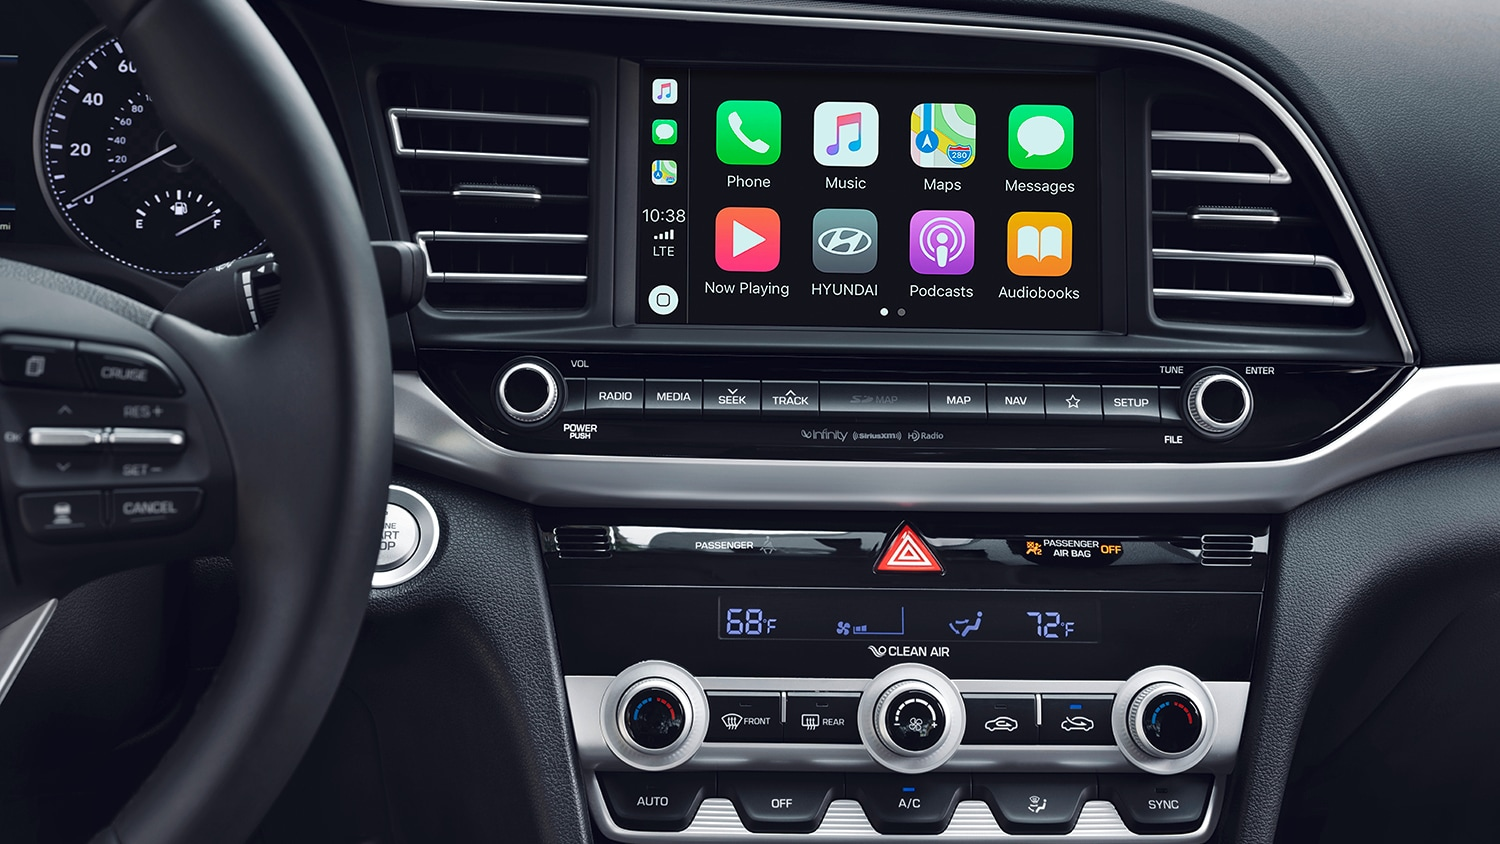 interior view of the multi-informational display system of the 2019 elantra